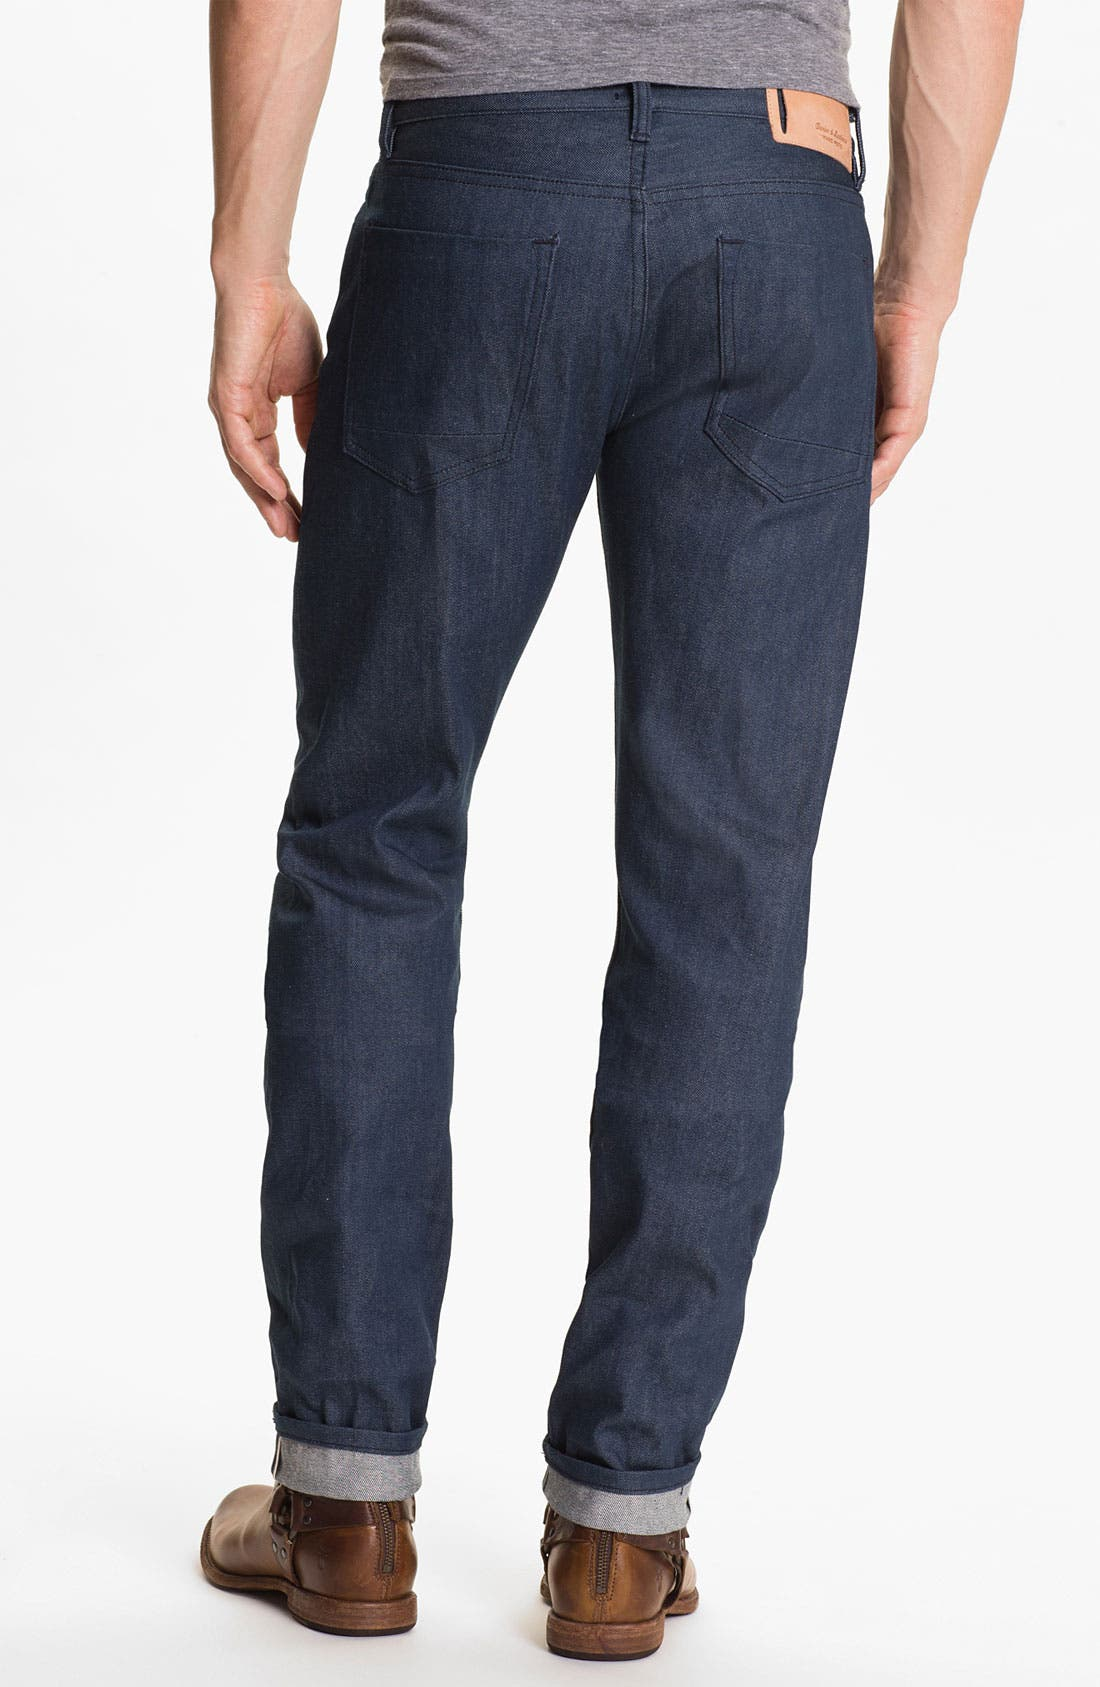 Main Image - Denim & Leathers by Andrew Marc 'Ocean' Slim Straight Leg Raw Selvedge Jeans (Indigo)